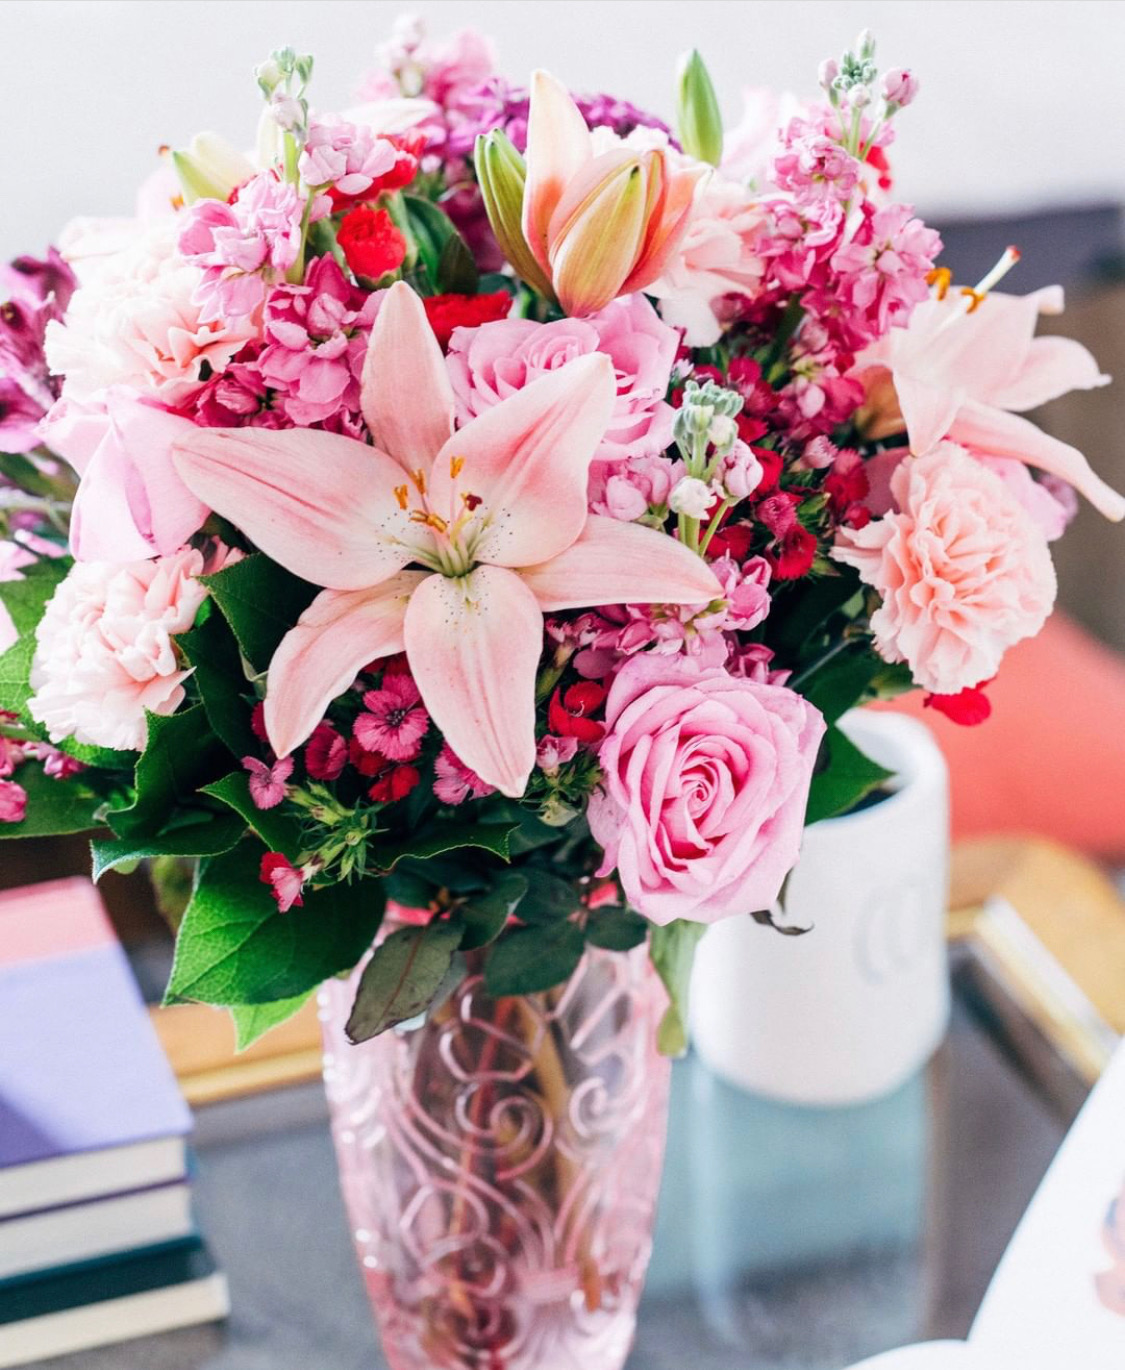 best flowers for mother's day, best flowers gift, roses that last a year, flower in a box, chicago mom best gifts, jennifer worman home, living room inspiration, home decor flowers, 1-800 flowers, luxe flowers from 1-800 flowers